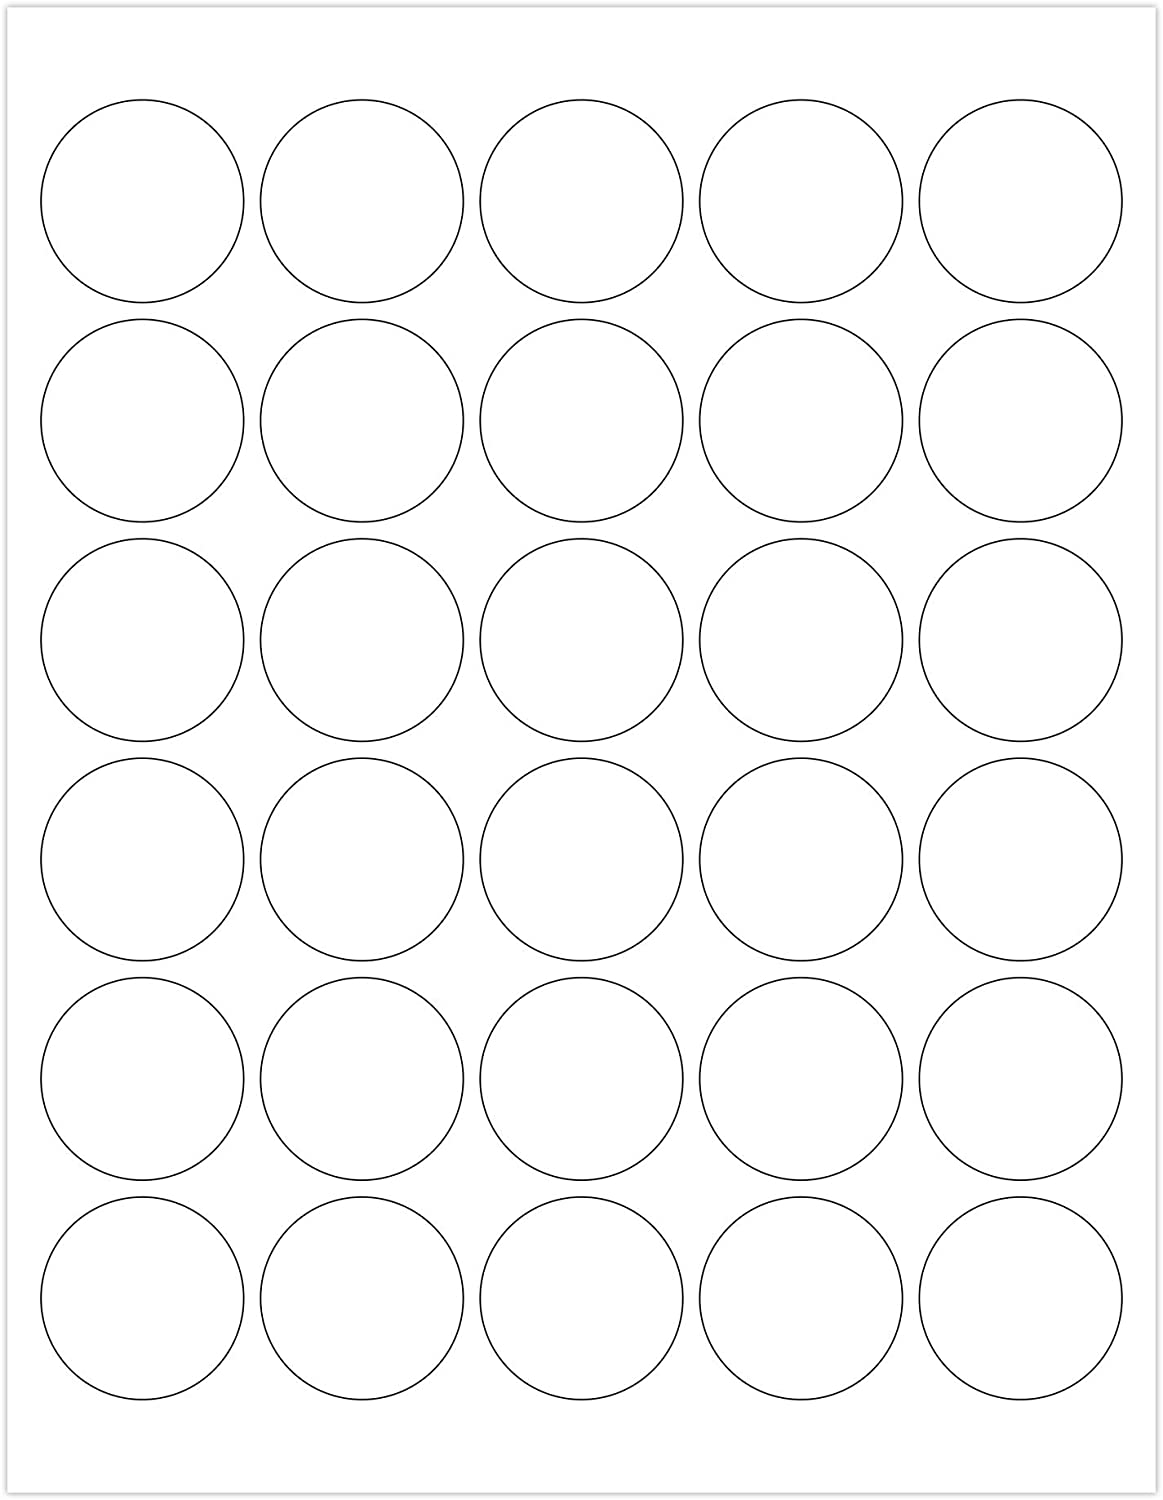 ChromaLabel 1-1/2 Inch Round Printable Labels, Compatible with Laser and Inkjet Printers, 750 Pack, 25 Sheets, White